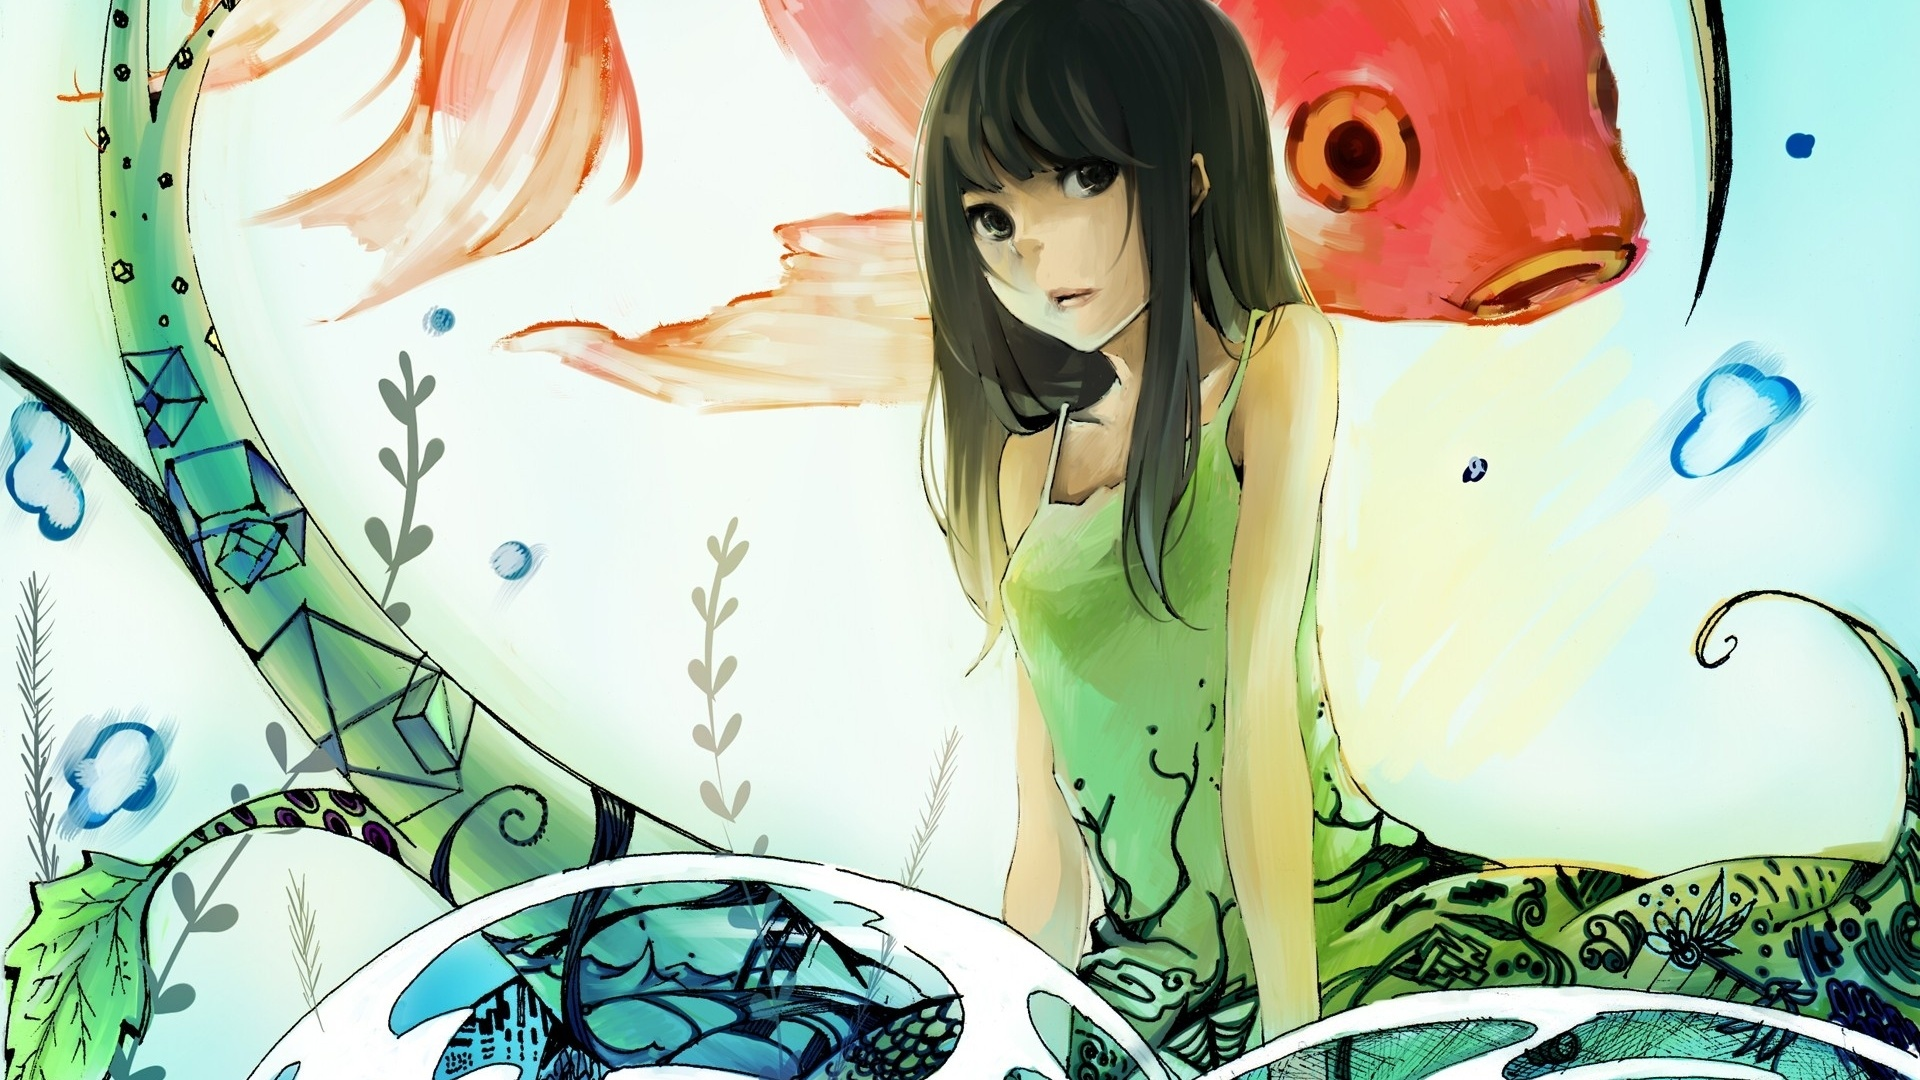 1920x1080 Cute Anime Girl & Fishes desktop PC and Mac